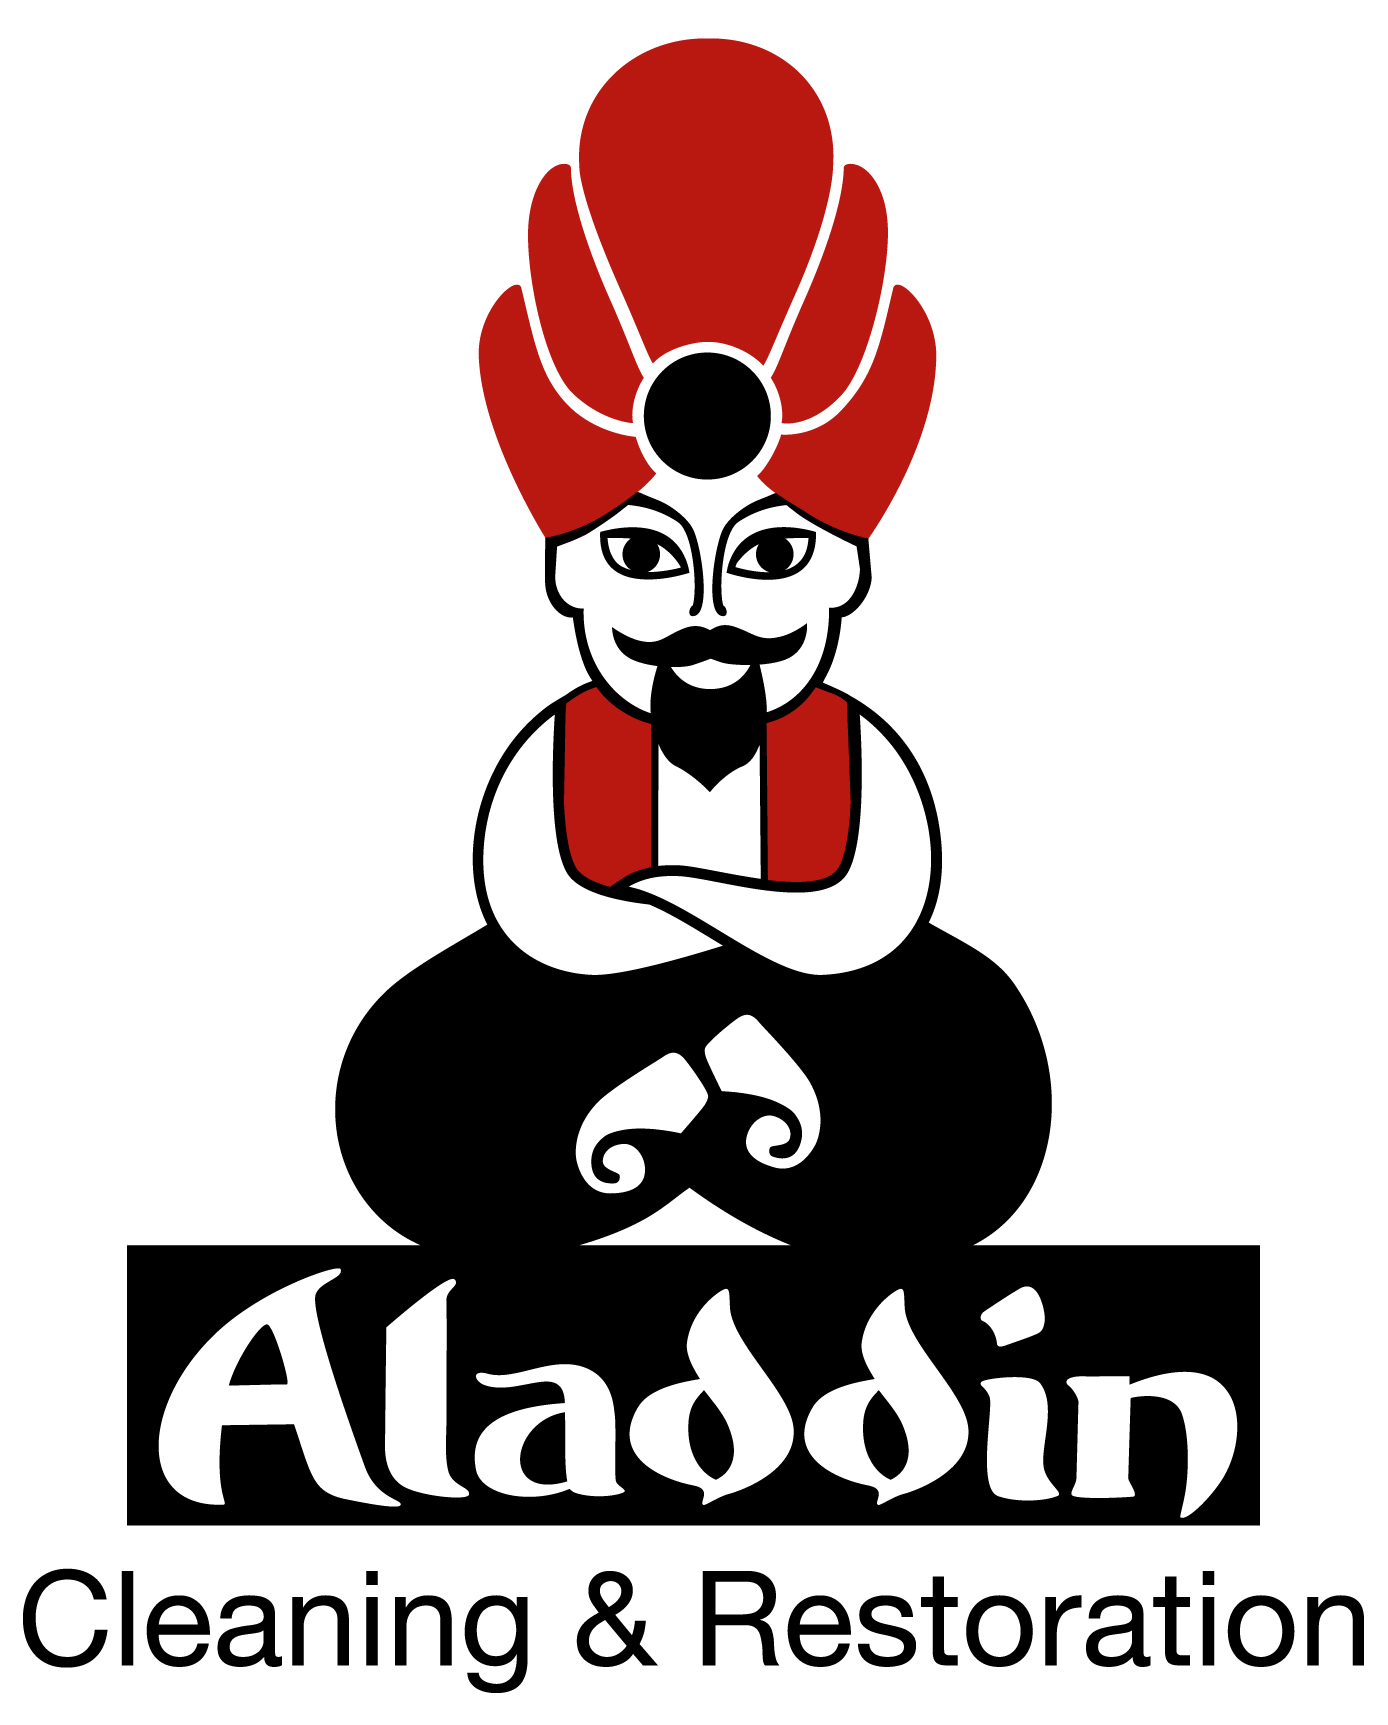 Aladdin Cleaning & Restoration